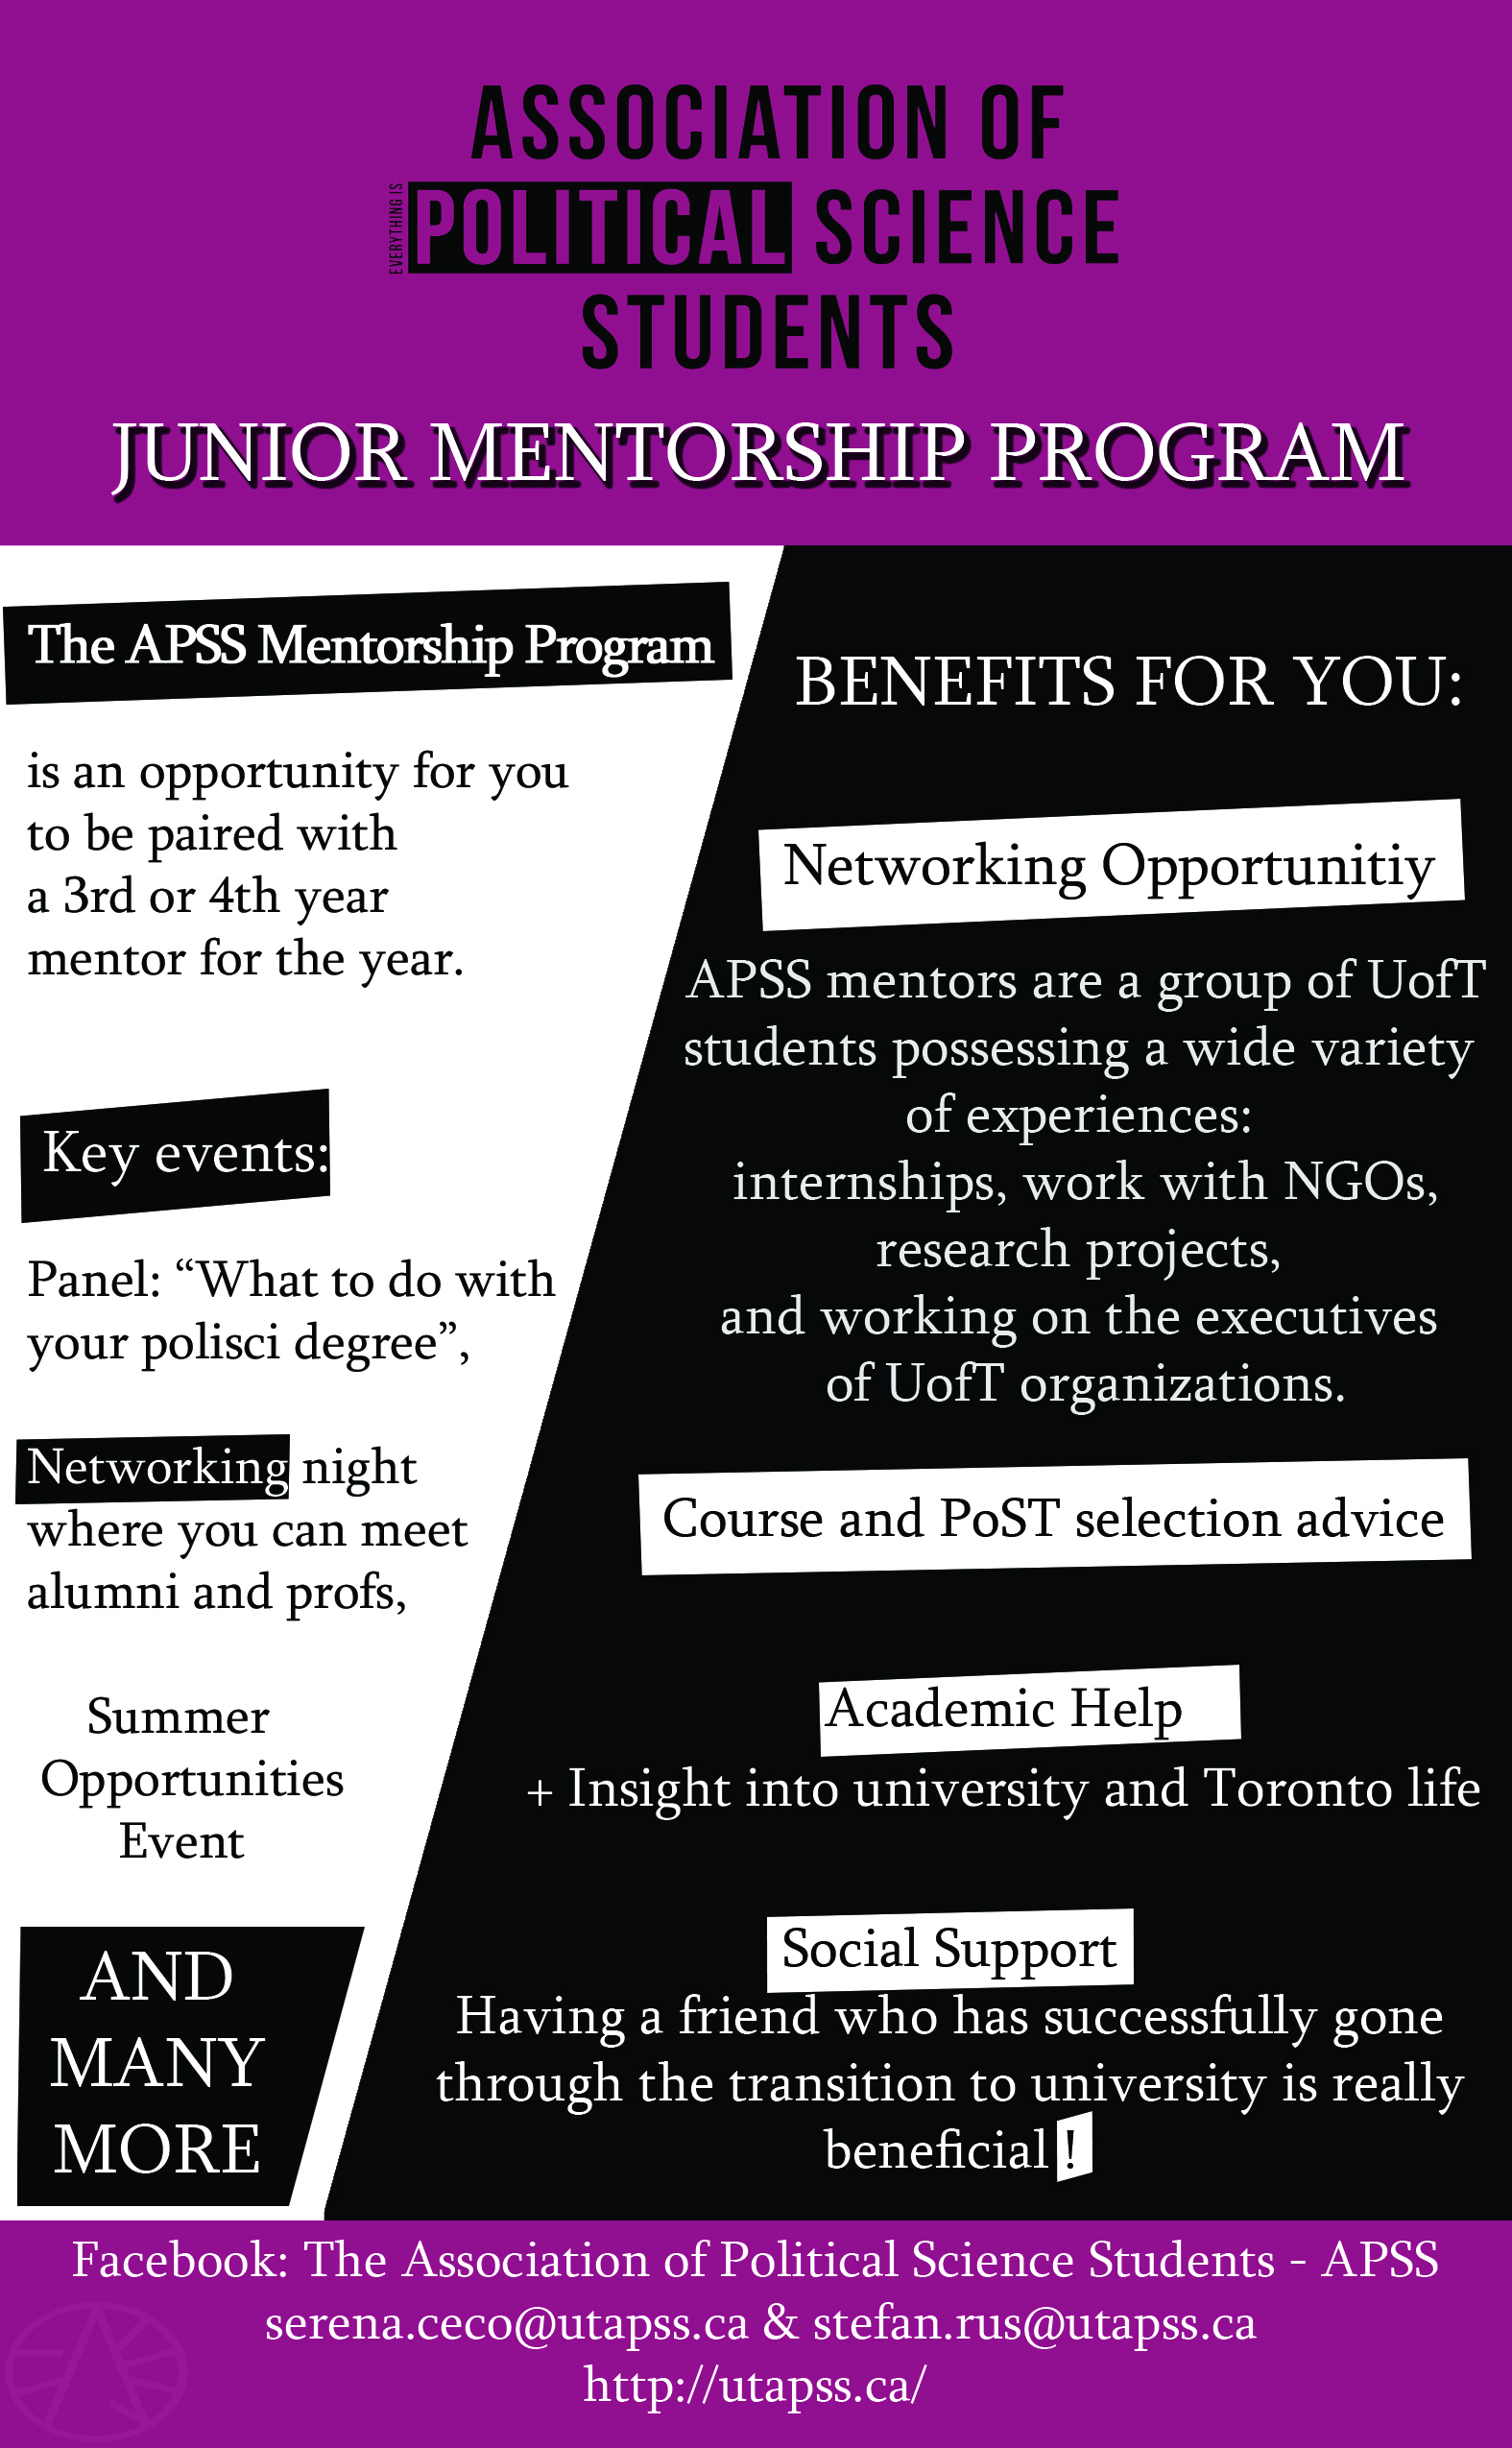 The Junior Mentorship Program is a fantastic academic opportunity available to all undergraduate students either enrolled in, or intending to enroll in, the Political Science department. Designed to assist incoming students with their transition into the department, and the University of Toronto at large, the program matches first and second year Political Science students with qualified upper year mentors. Additional support is provided through our academic programming, which is aimed at helping students discover and take advantage of extra-curricular and employment opportunities available within the field of Political Science. Events include academic panels, professional networking nights, and socials. Mentor participation is also CCR recognized. A supportive learning community, the Junior Mentorship Program offers students the opportunity to broaden their professional networks, engage with like-minded individuals, and receive the guidance necessary to navigate their academic careers.